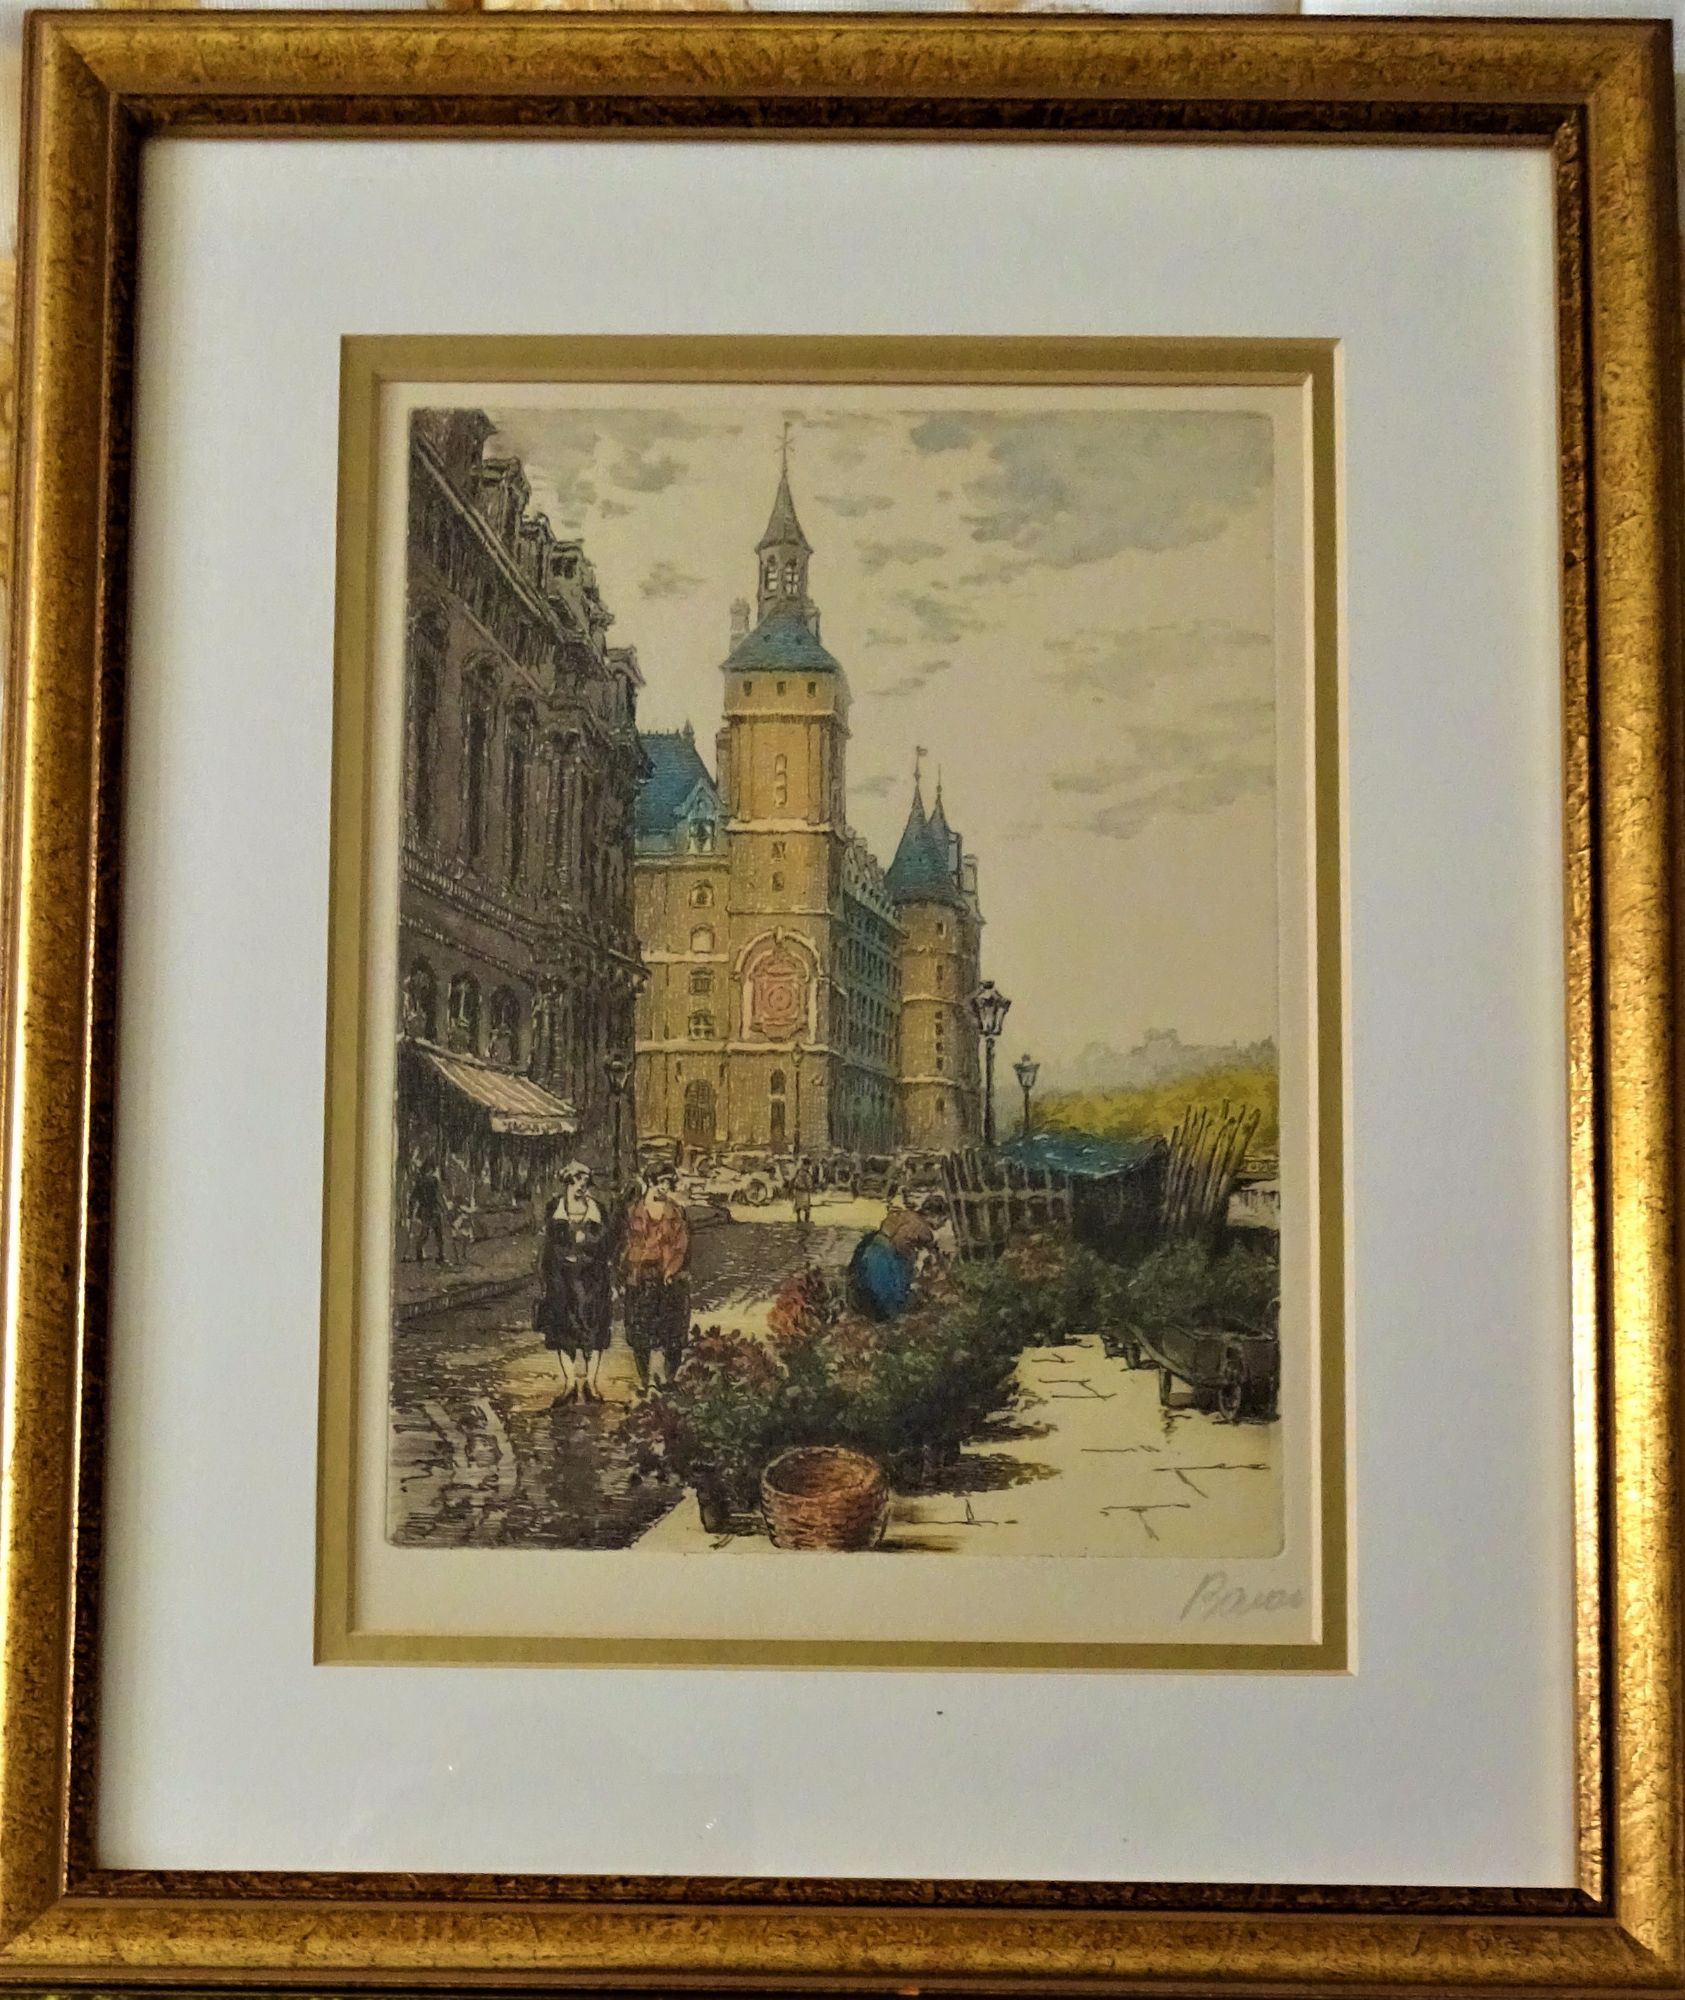 Baron, Flower Market off Pont Neuf Paris, aquatint, signed. c1920.